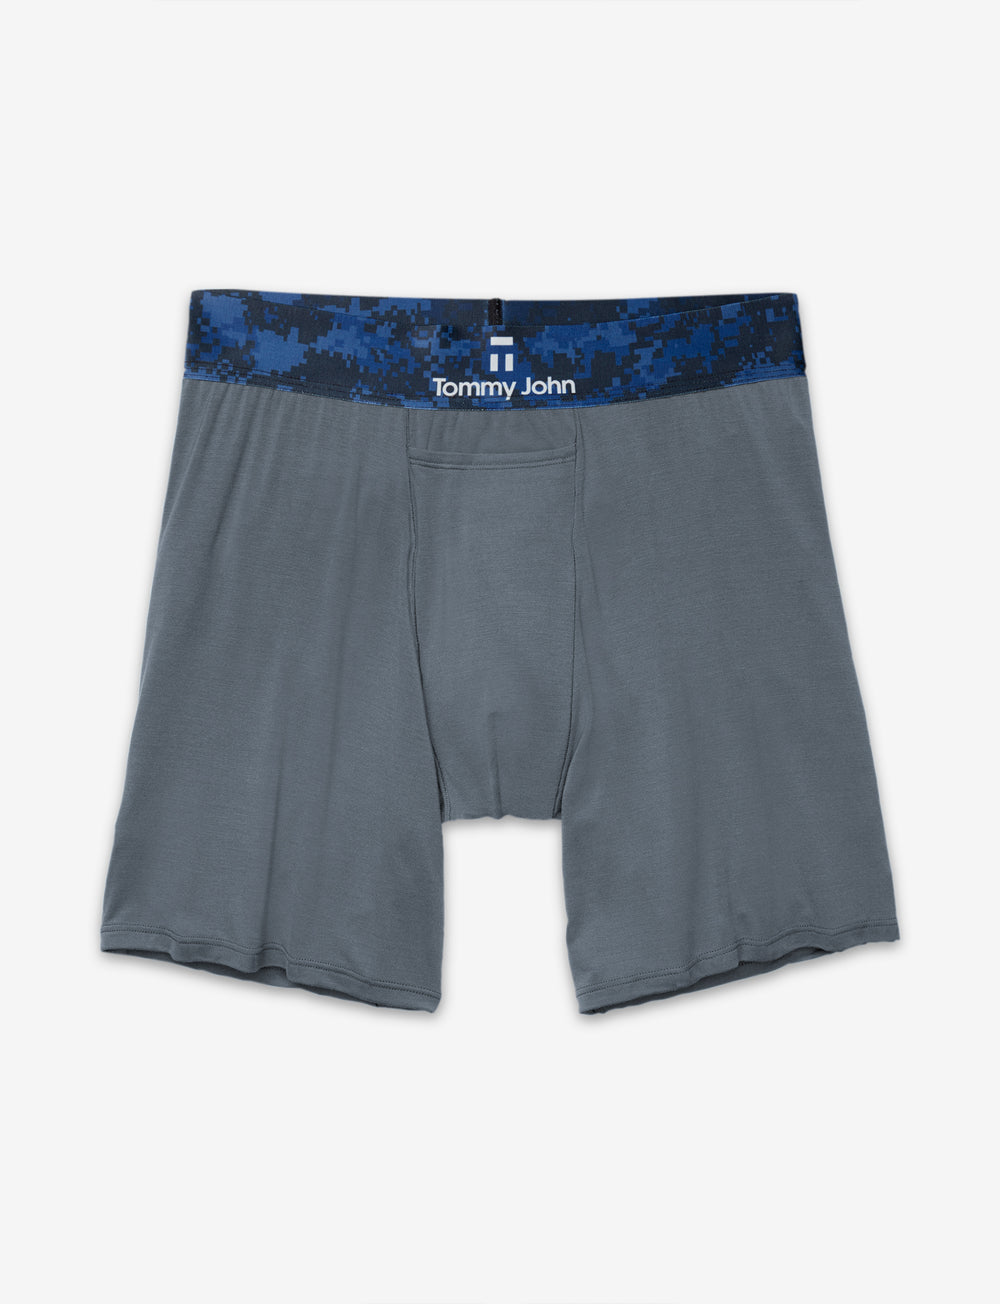 Second Skin Camo Waistband Relaxed Fit Boxer Details Image